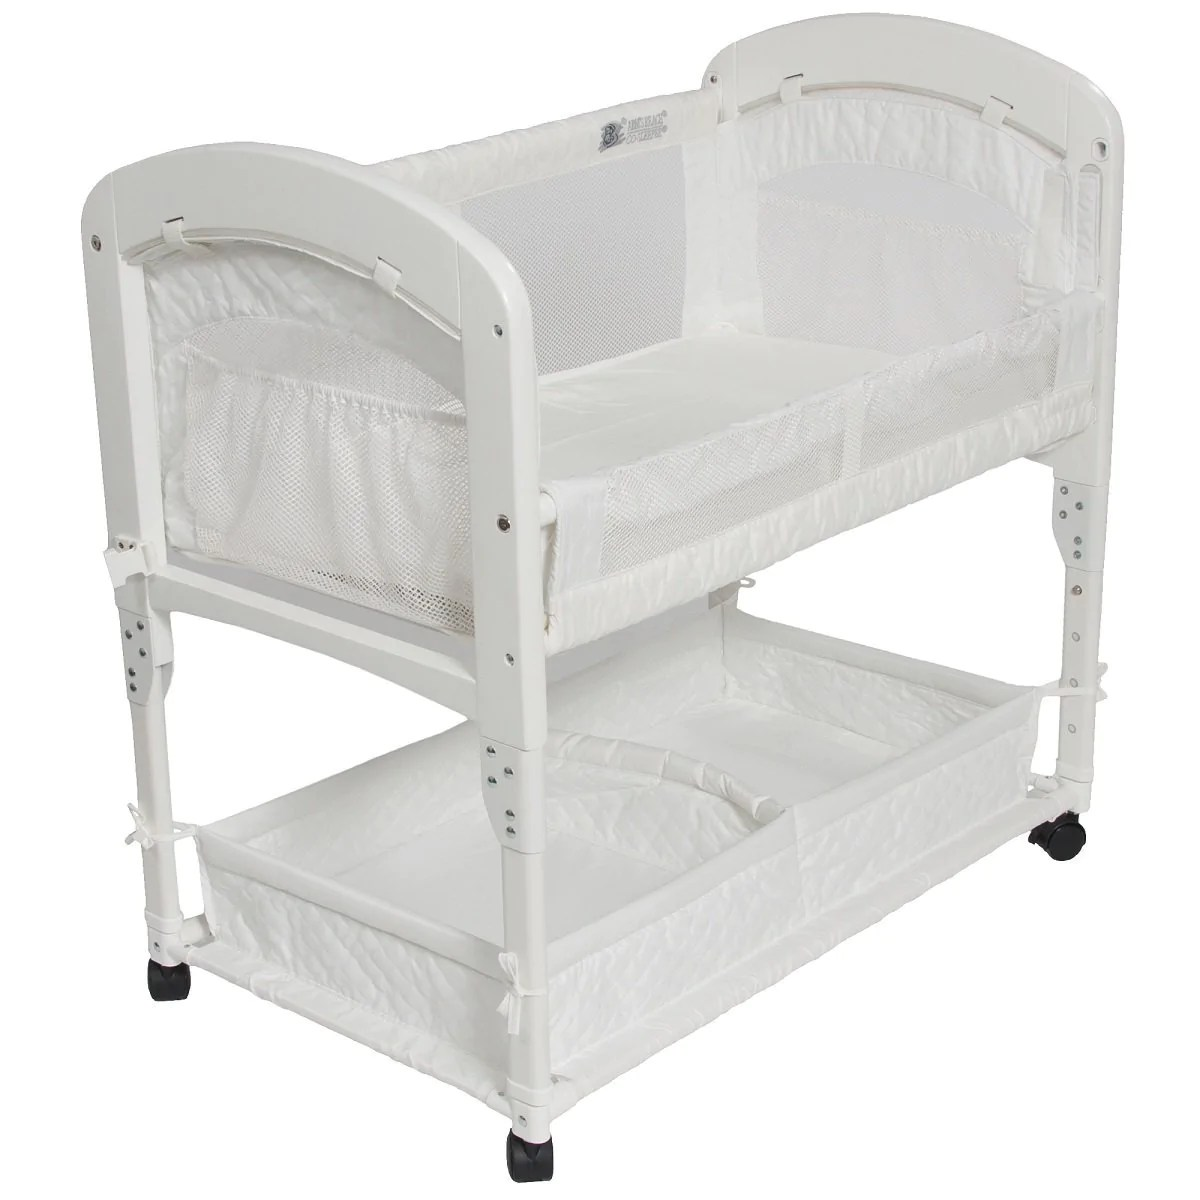 Sterling Reach Cambria Bassinet Reach Co Sleeper Bassinet Reach Cambria Baby Co Sleeper Bed Walmart Baby Co Sleeper Pod baby Baby Co Sleeper